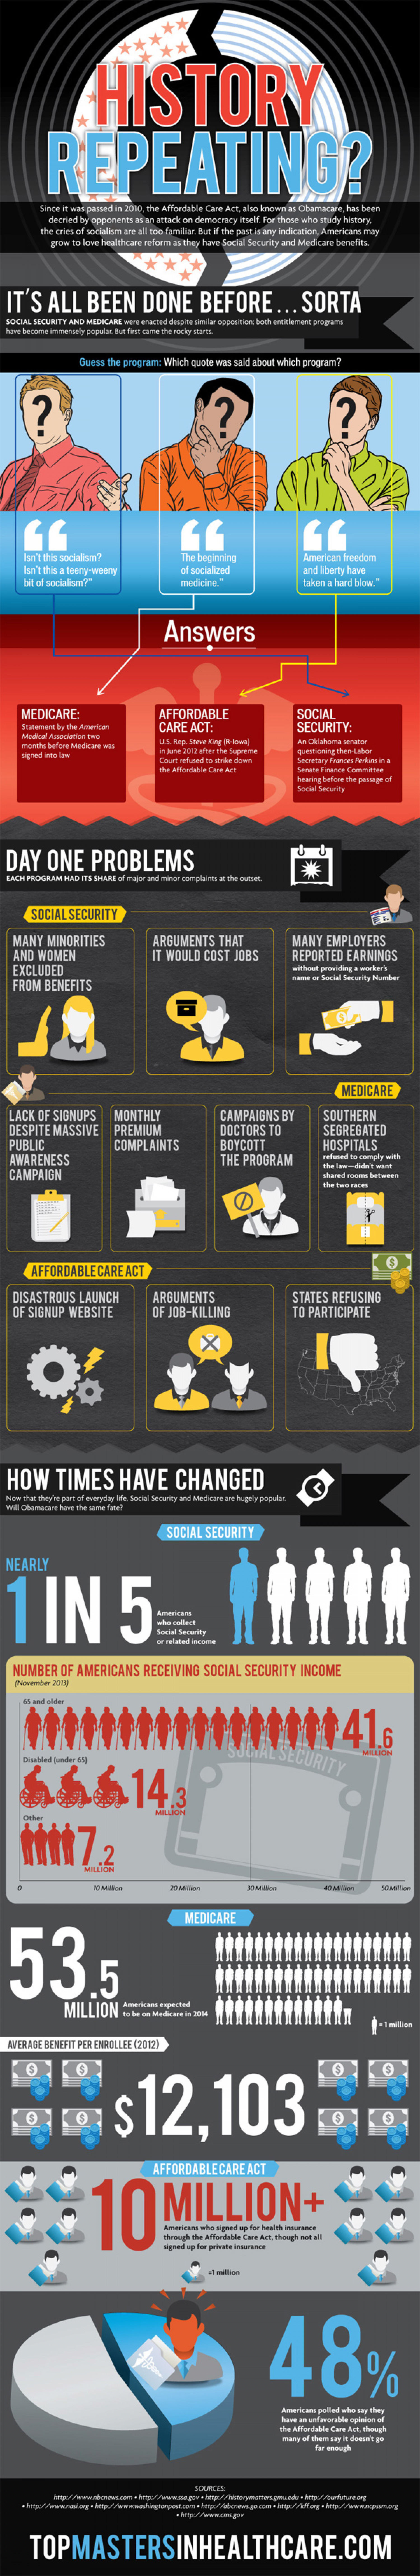 Is History Repeating Itself with Obamacare? Infographic